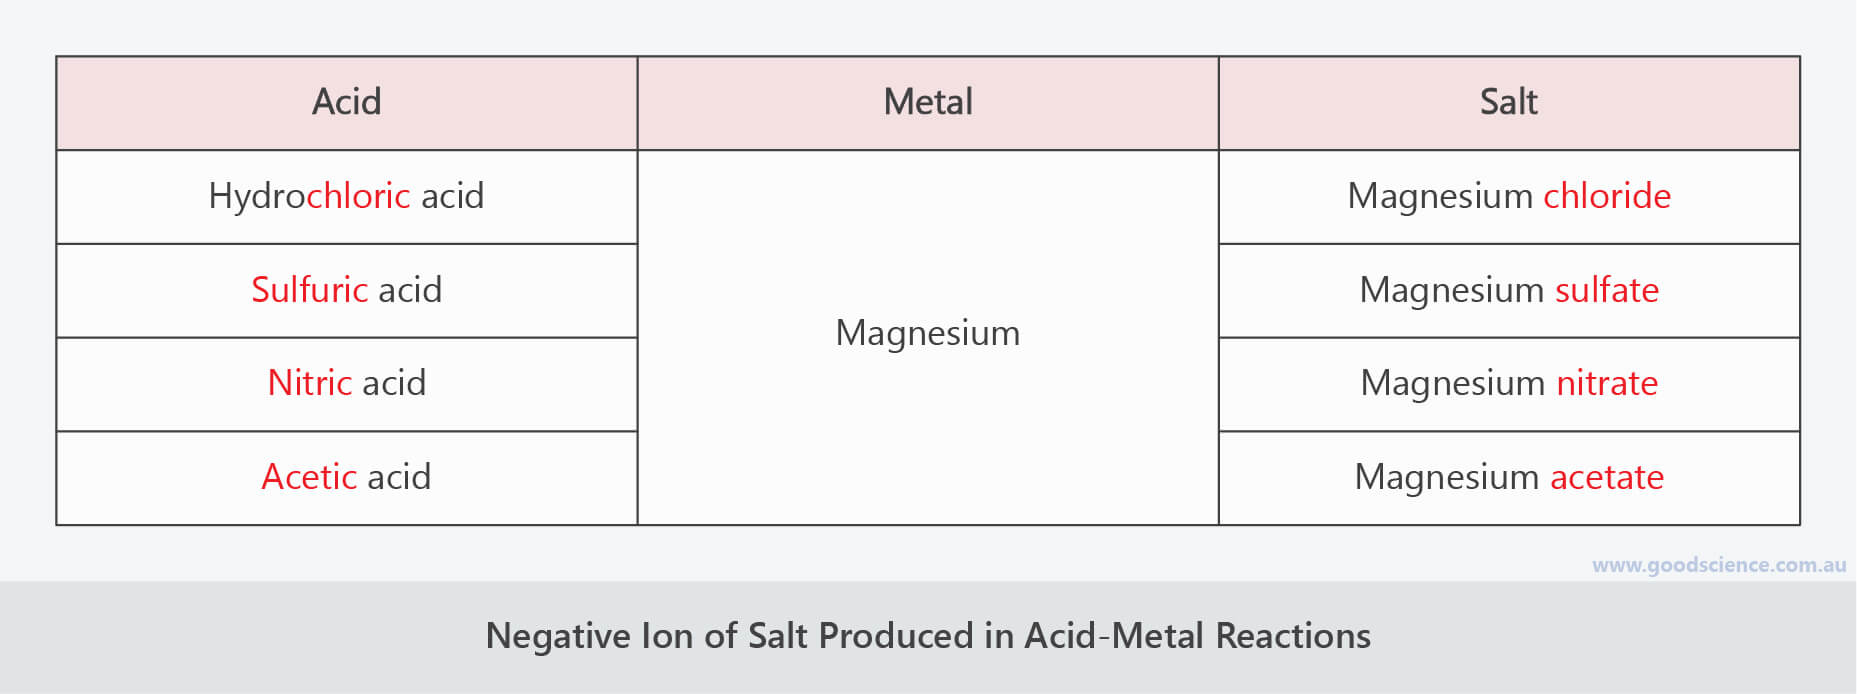 acid metal reaction salt negative ion